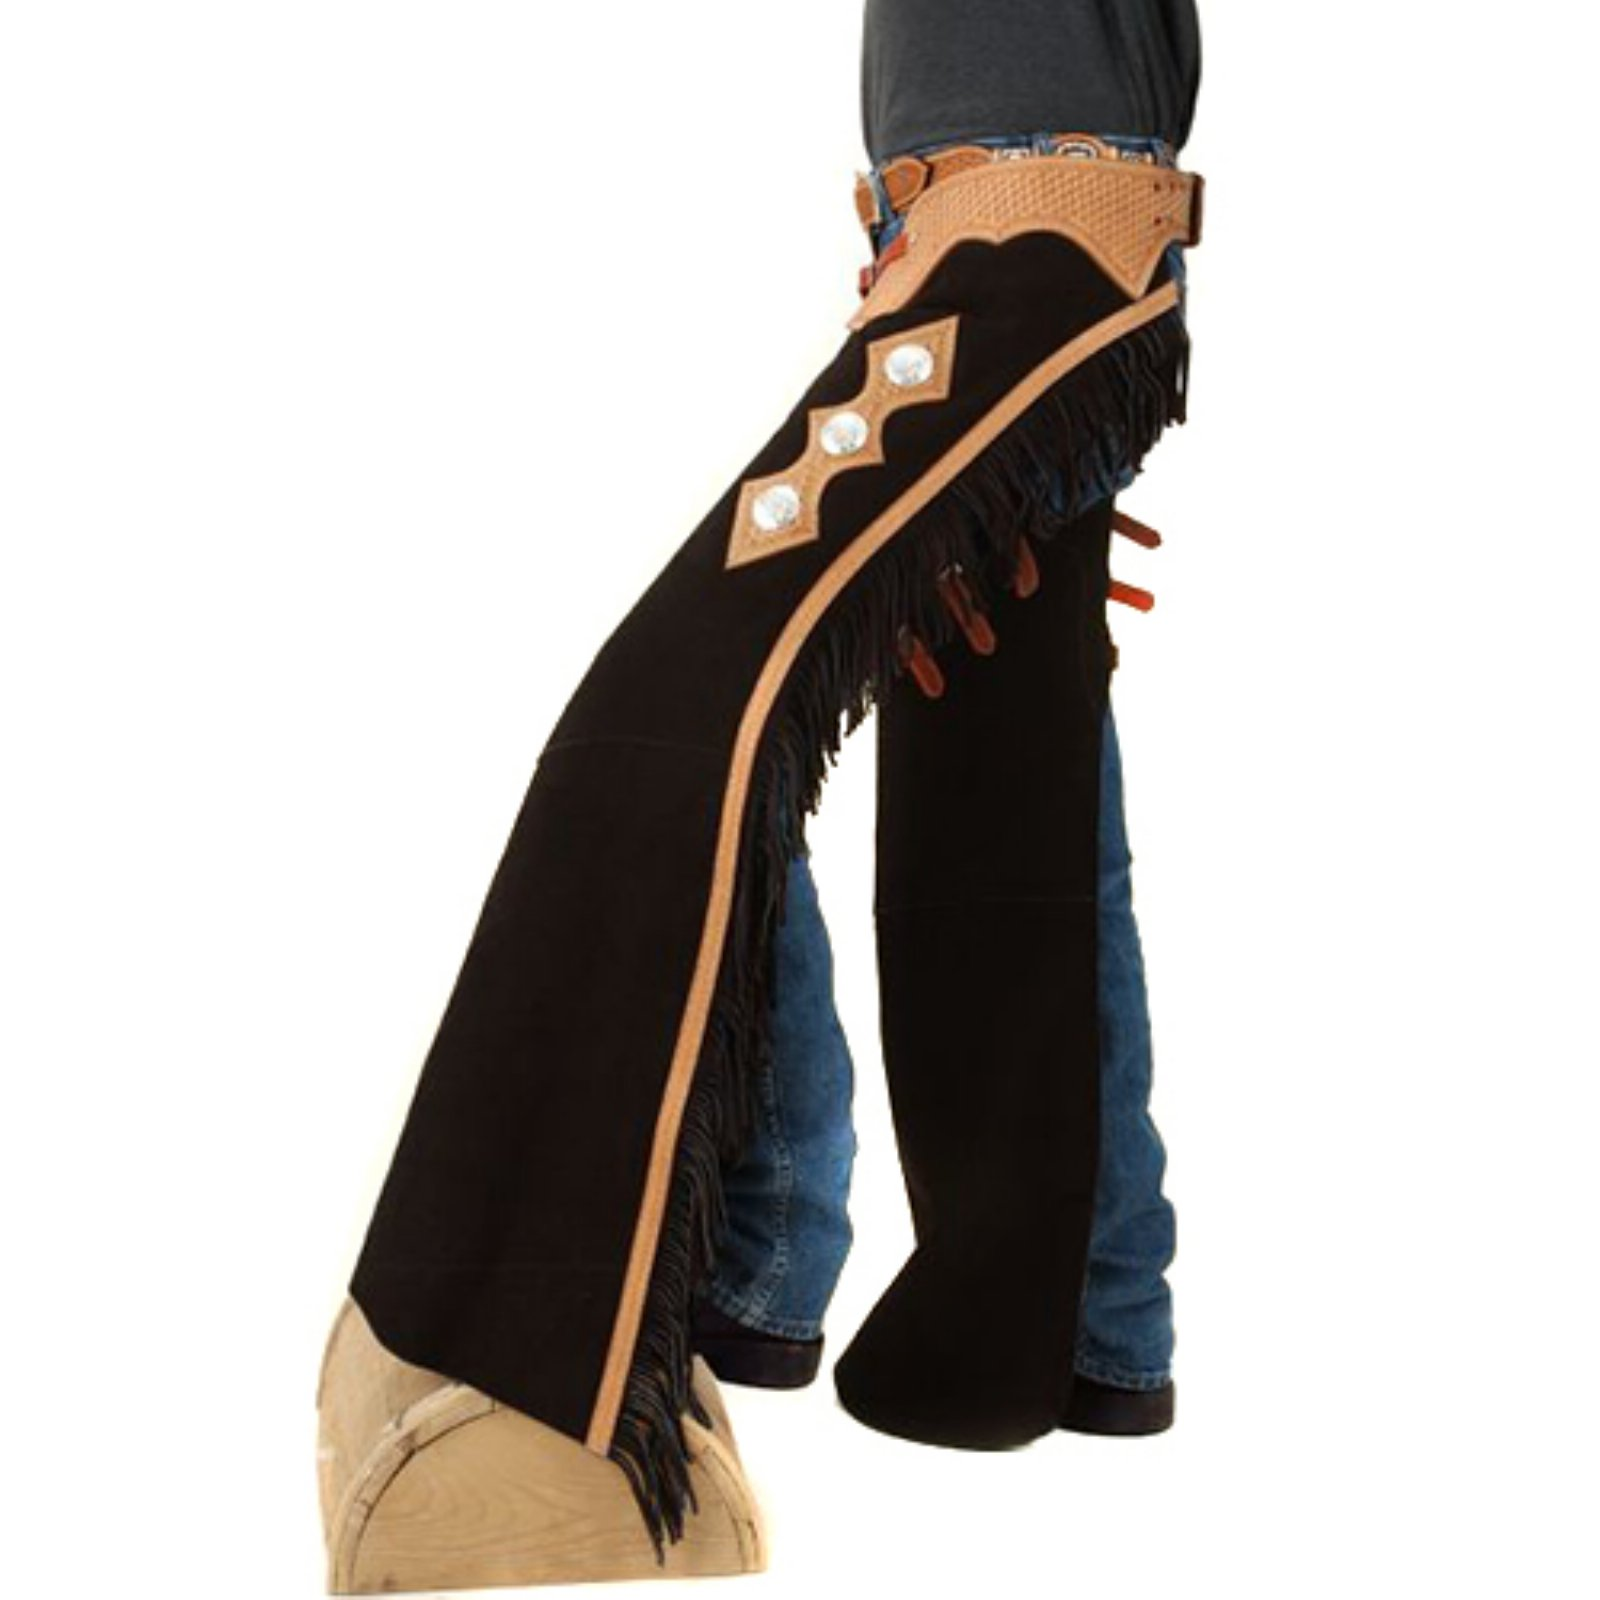 Tough-1 Suede Leather Show Chaps